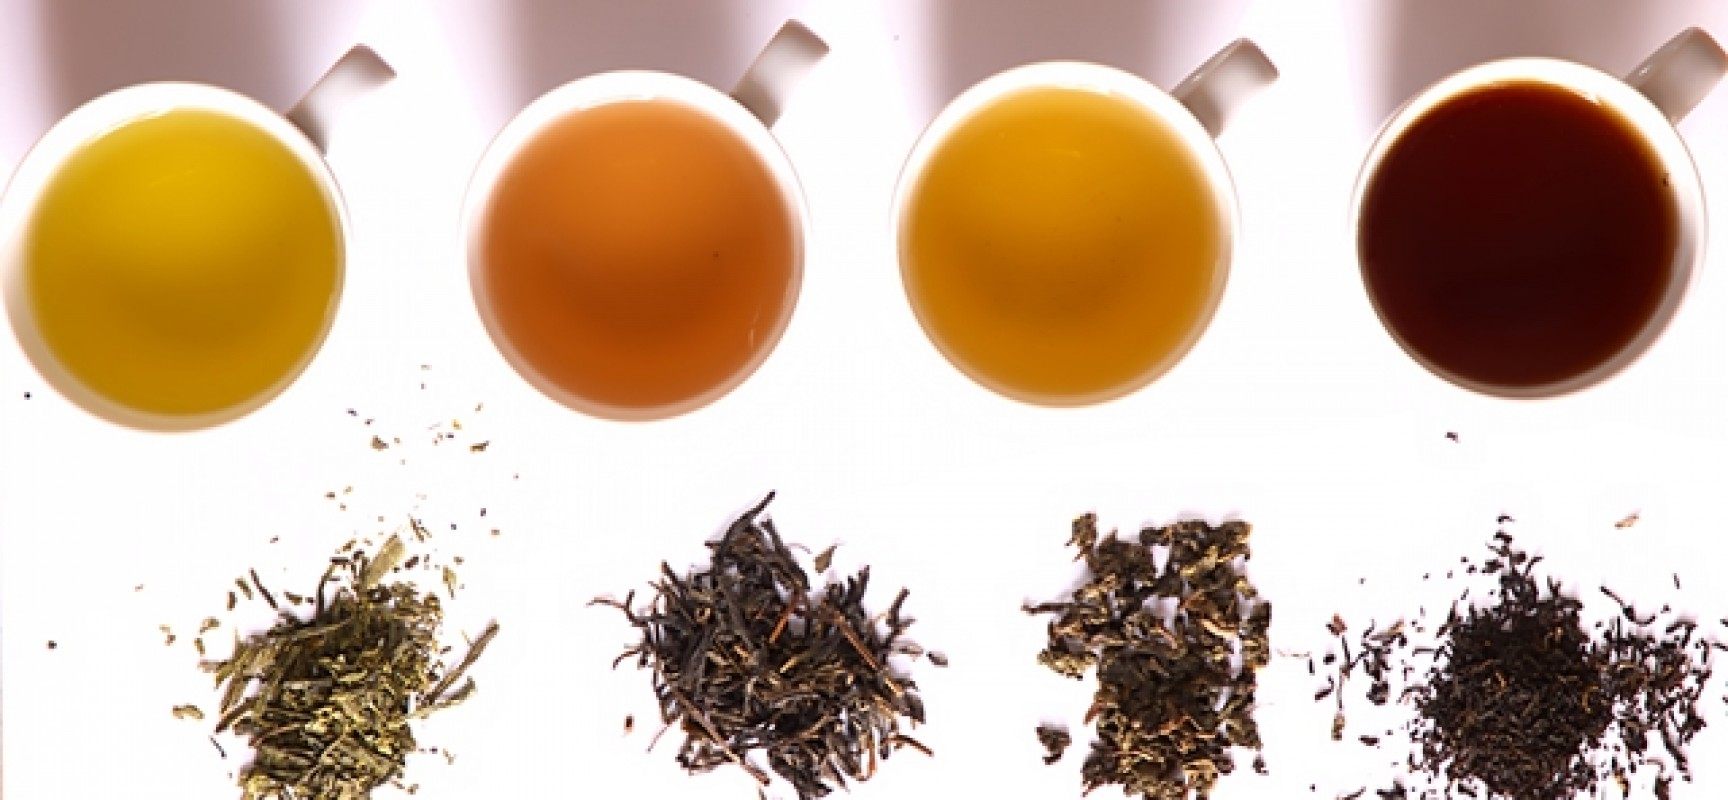 Different Varieties of Tea